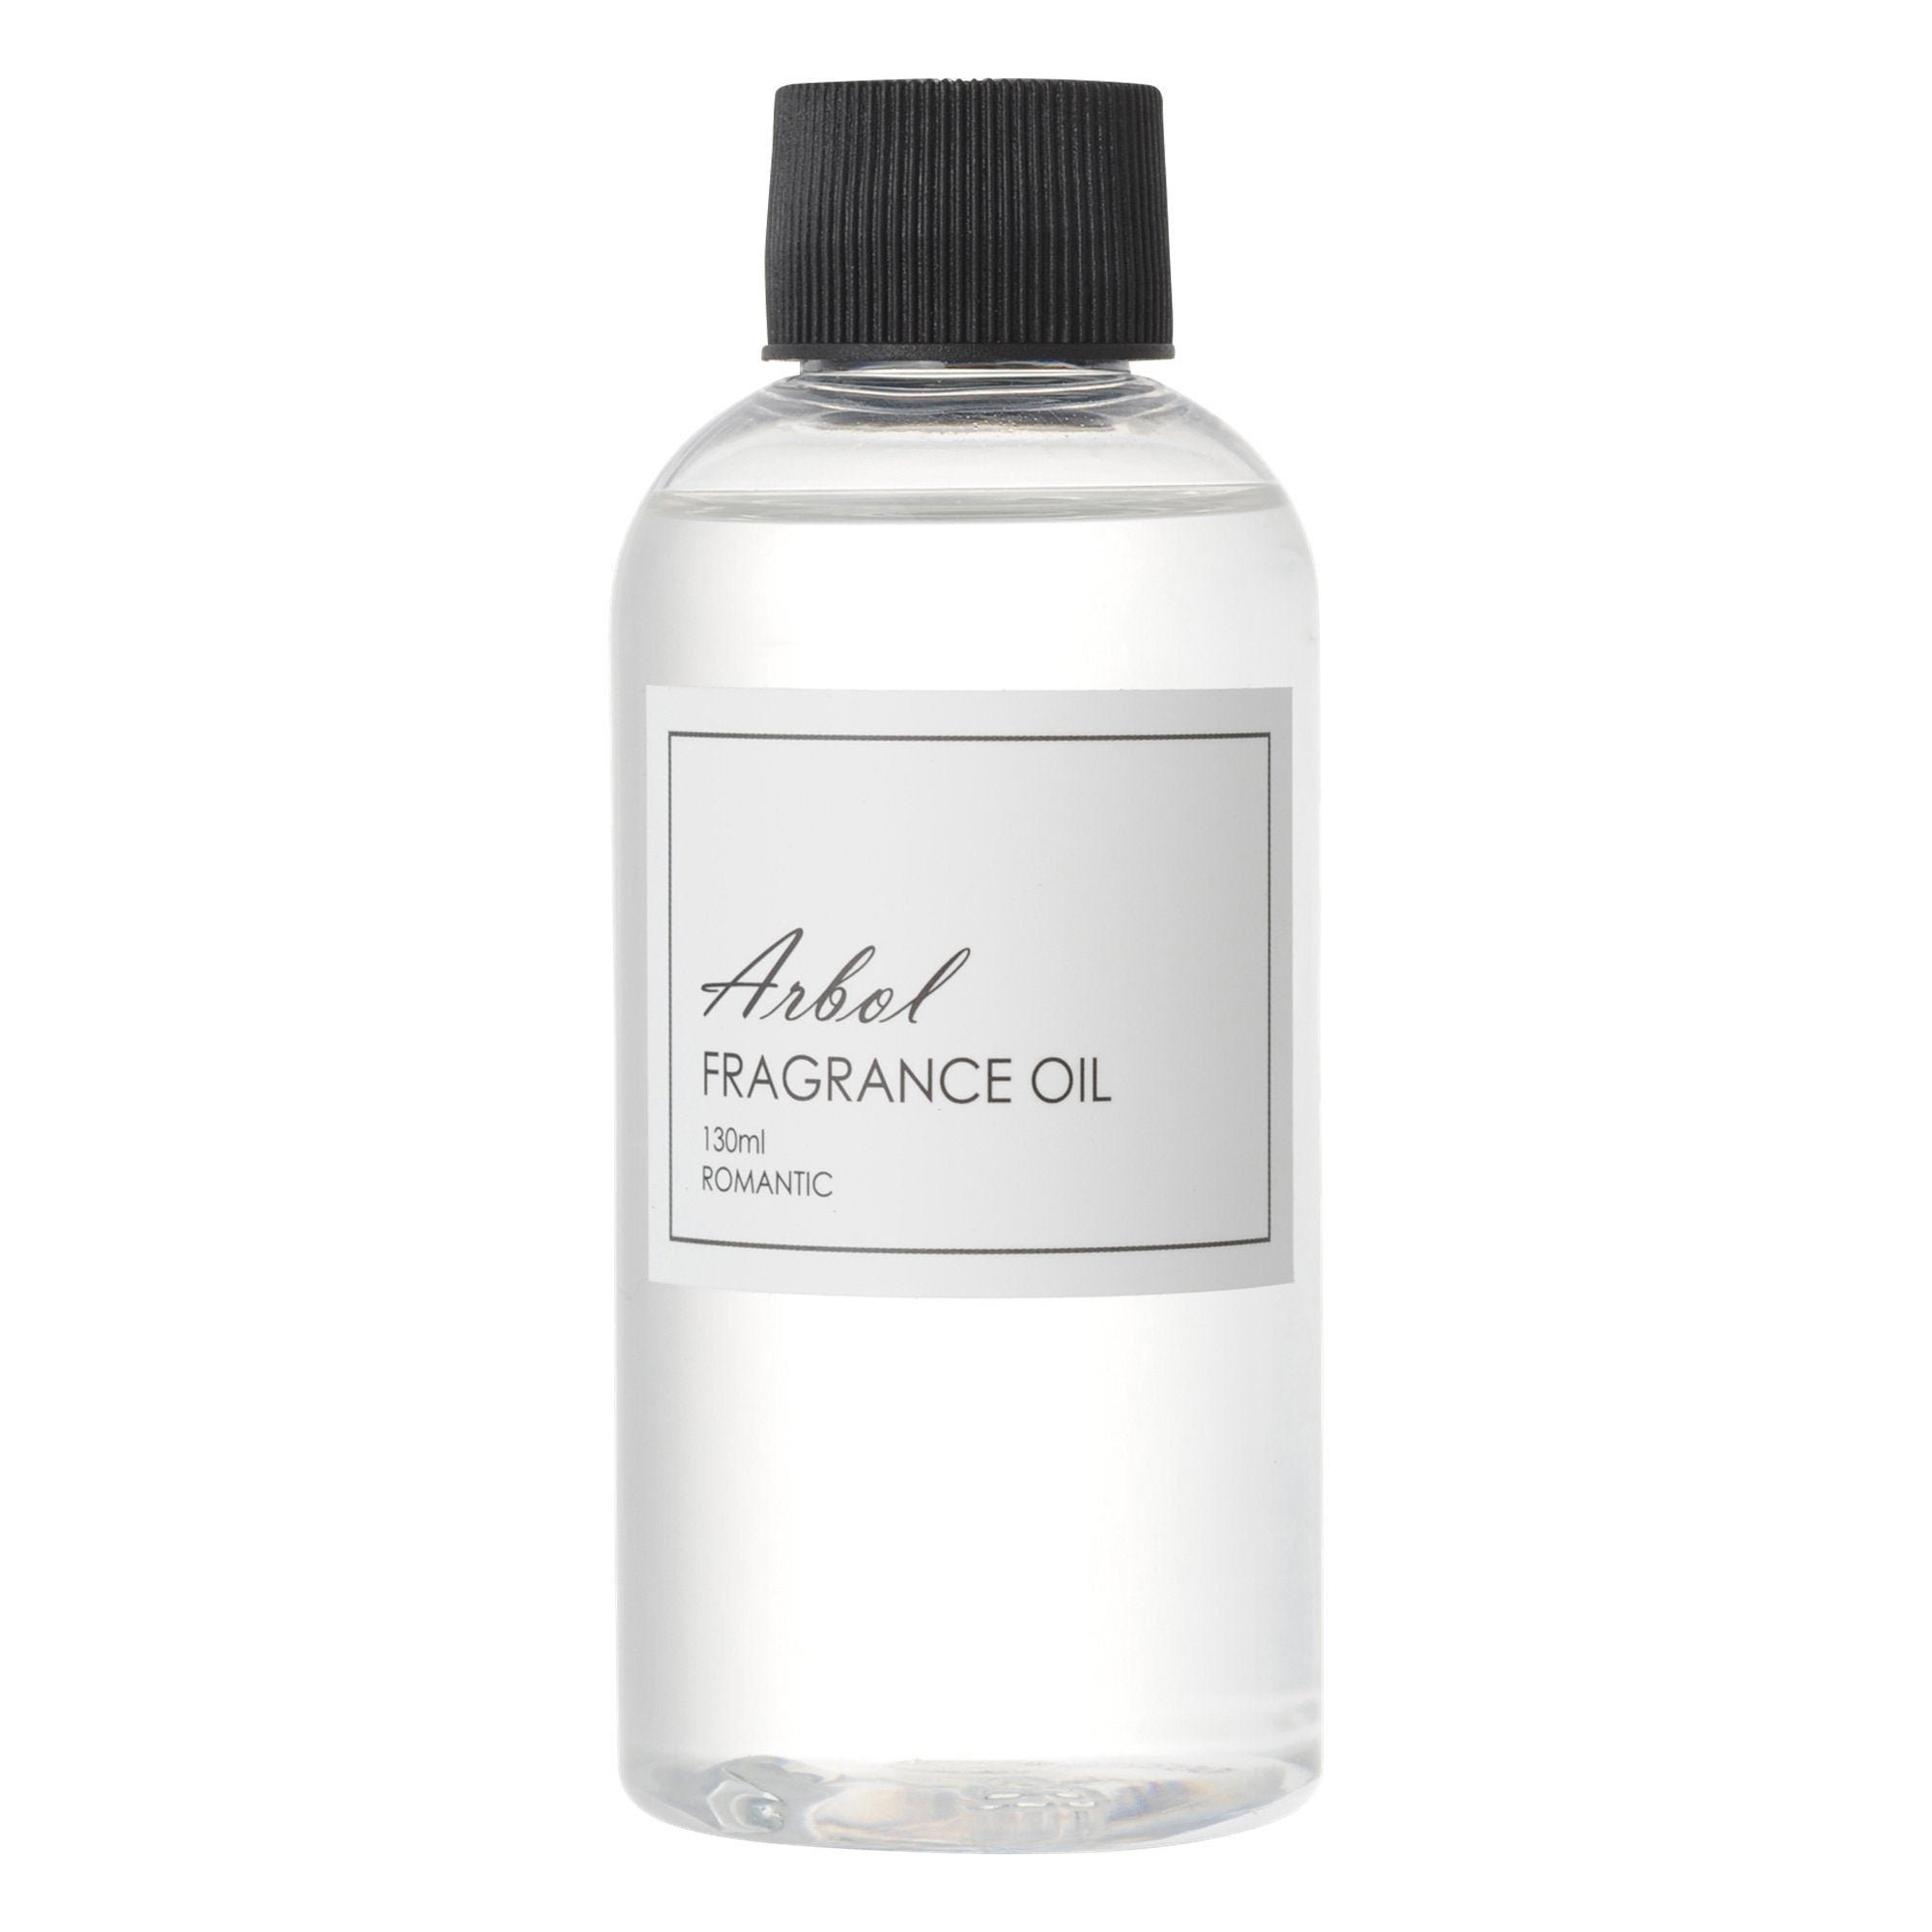 ARBOL Fragrance Oil White - weare-francfranc